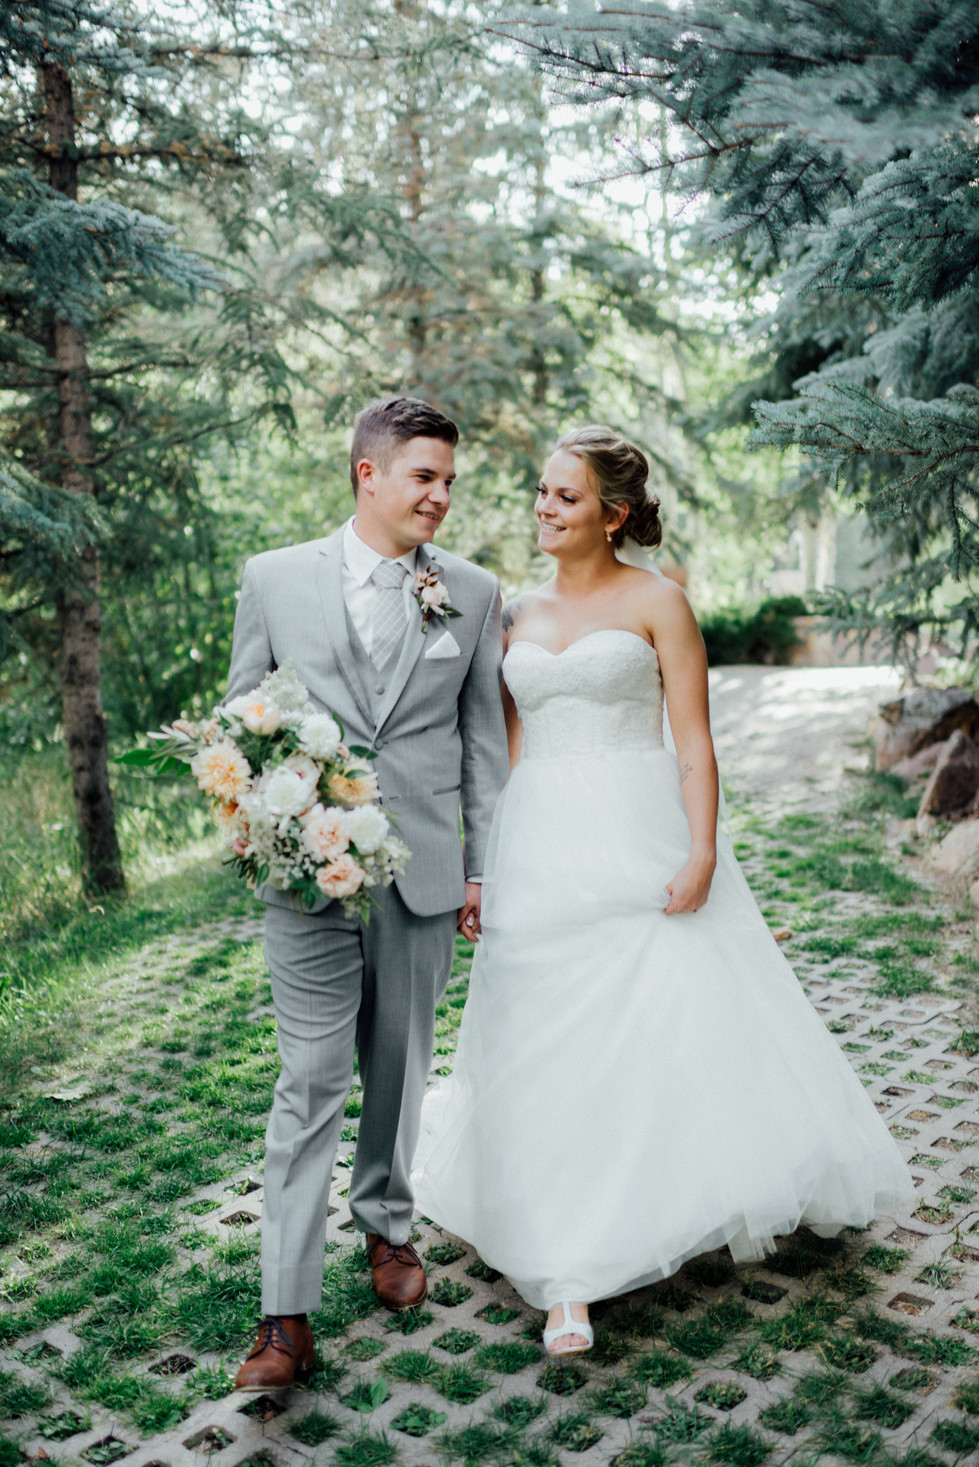 Haley & Scott - The Sonnenalp, Vail